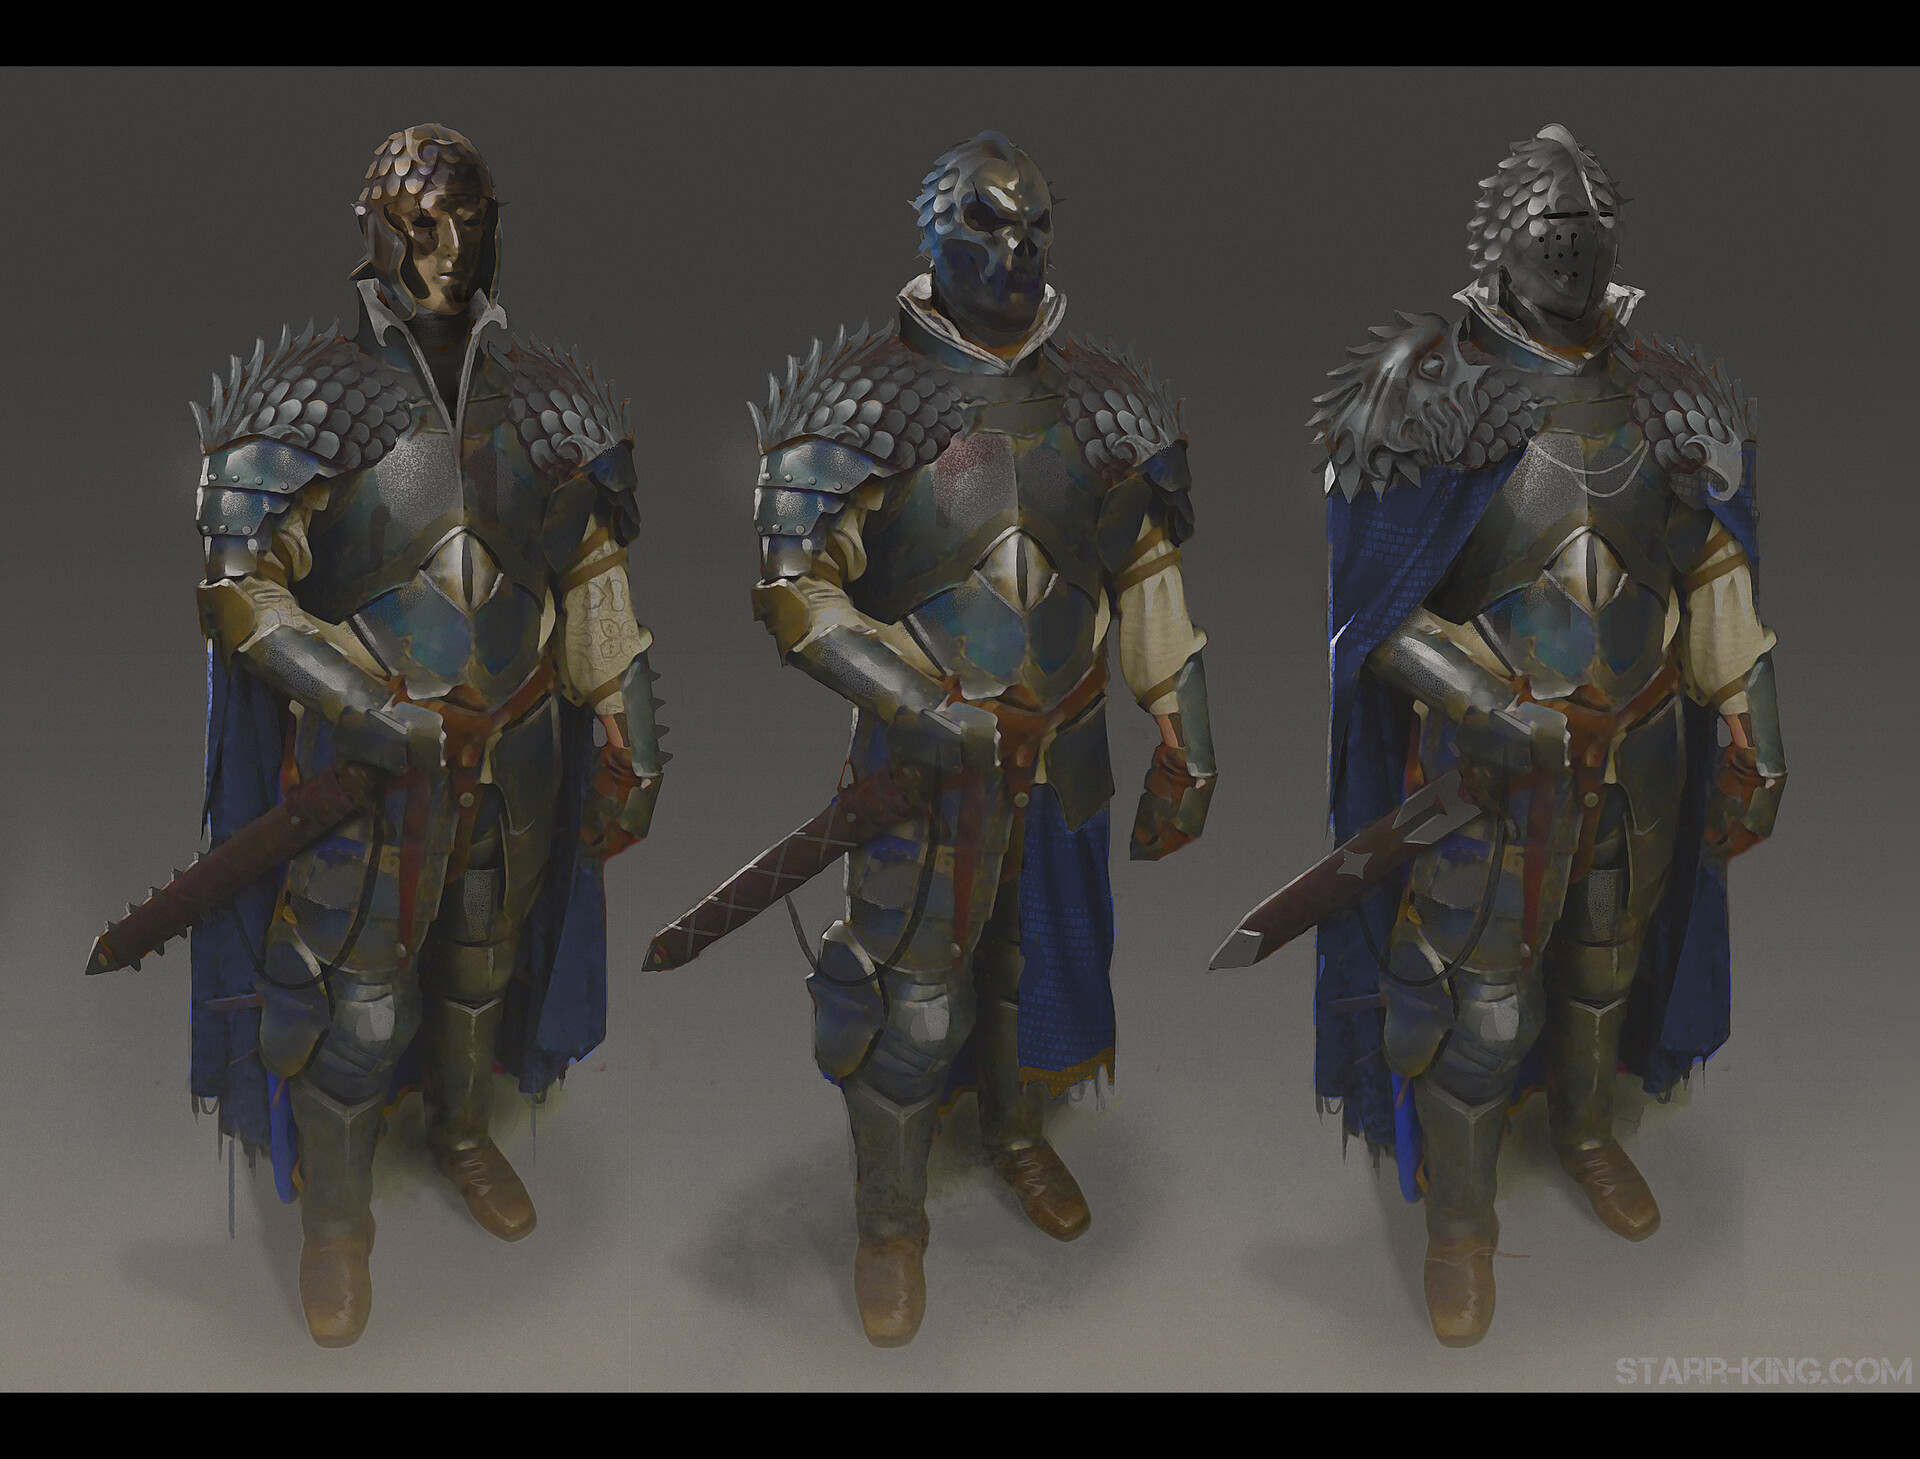 James starr king starr king concept maskedknight